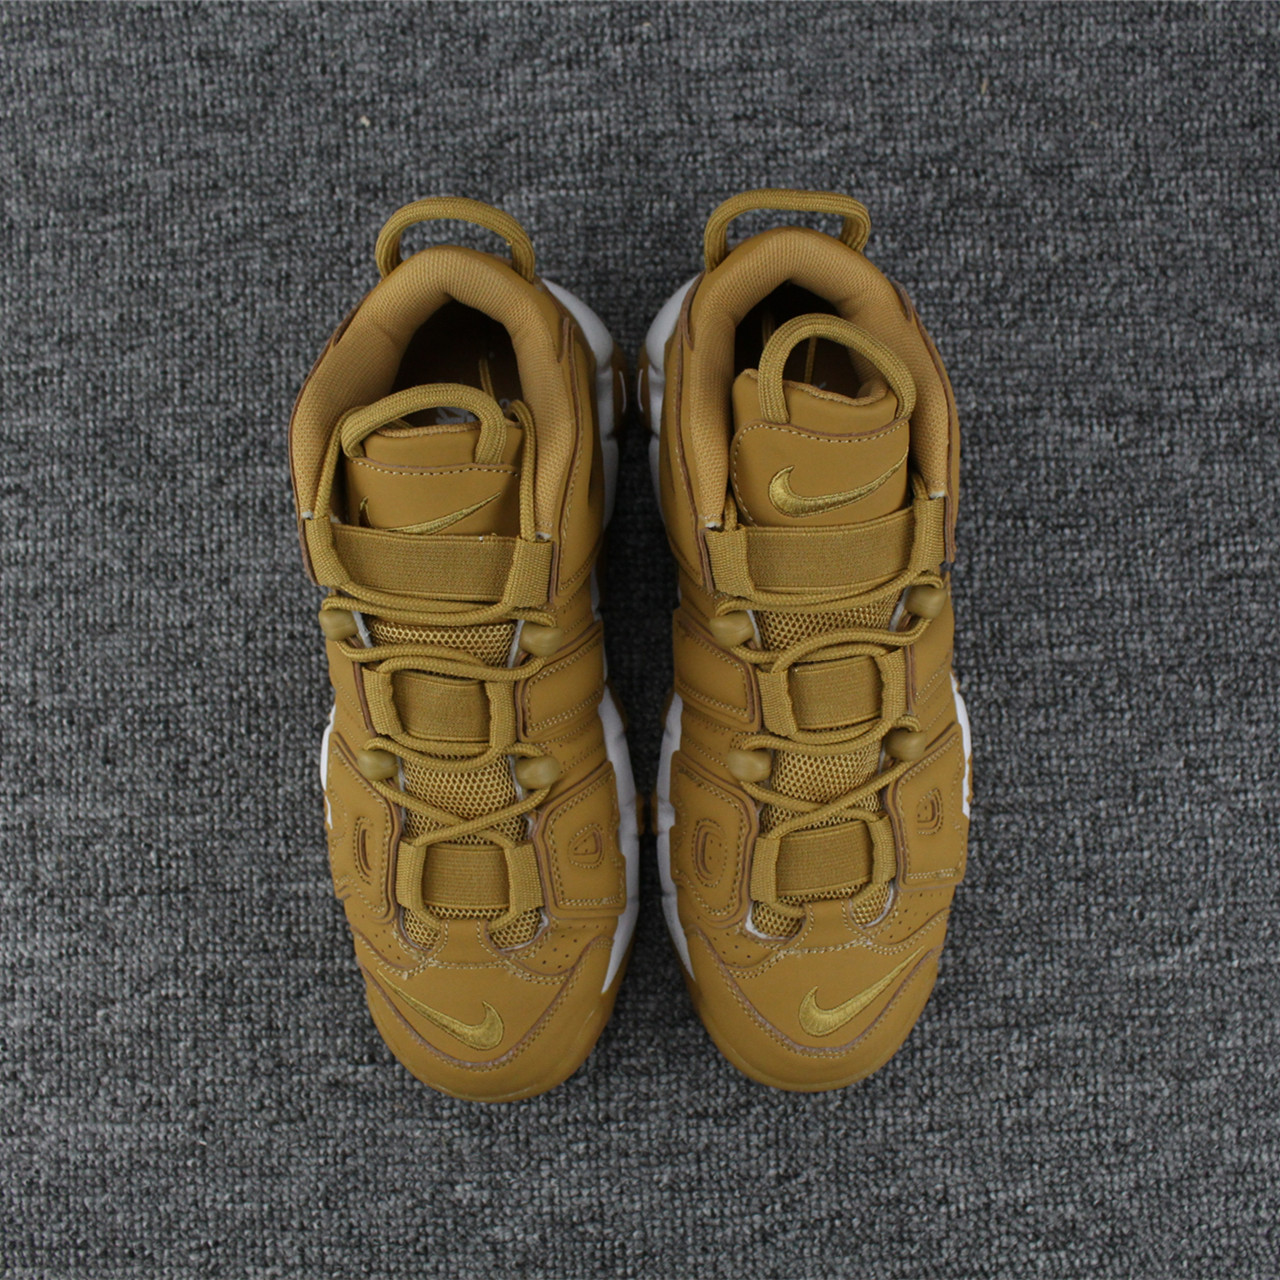 Nike Air More Uptempo 96 Yellow Wheat White Shoes